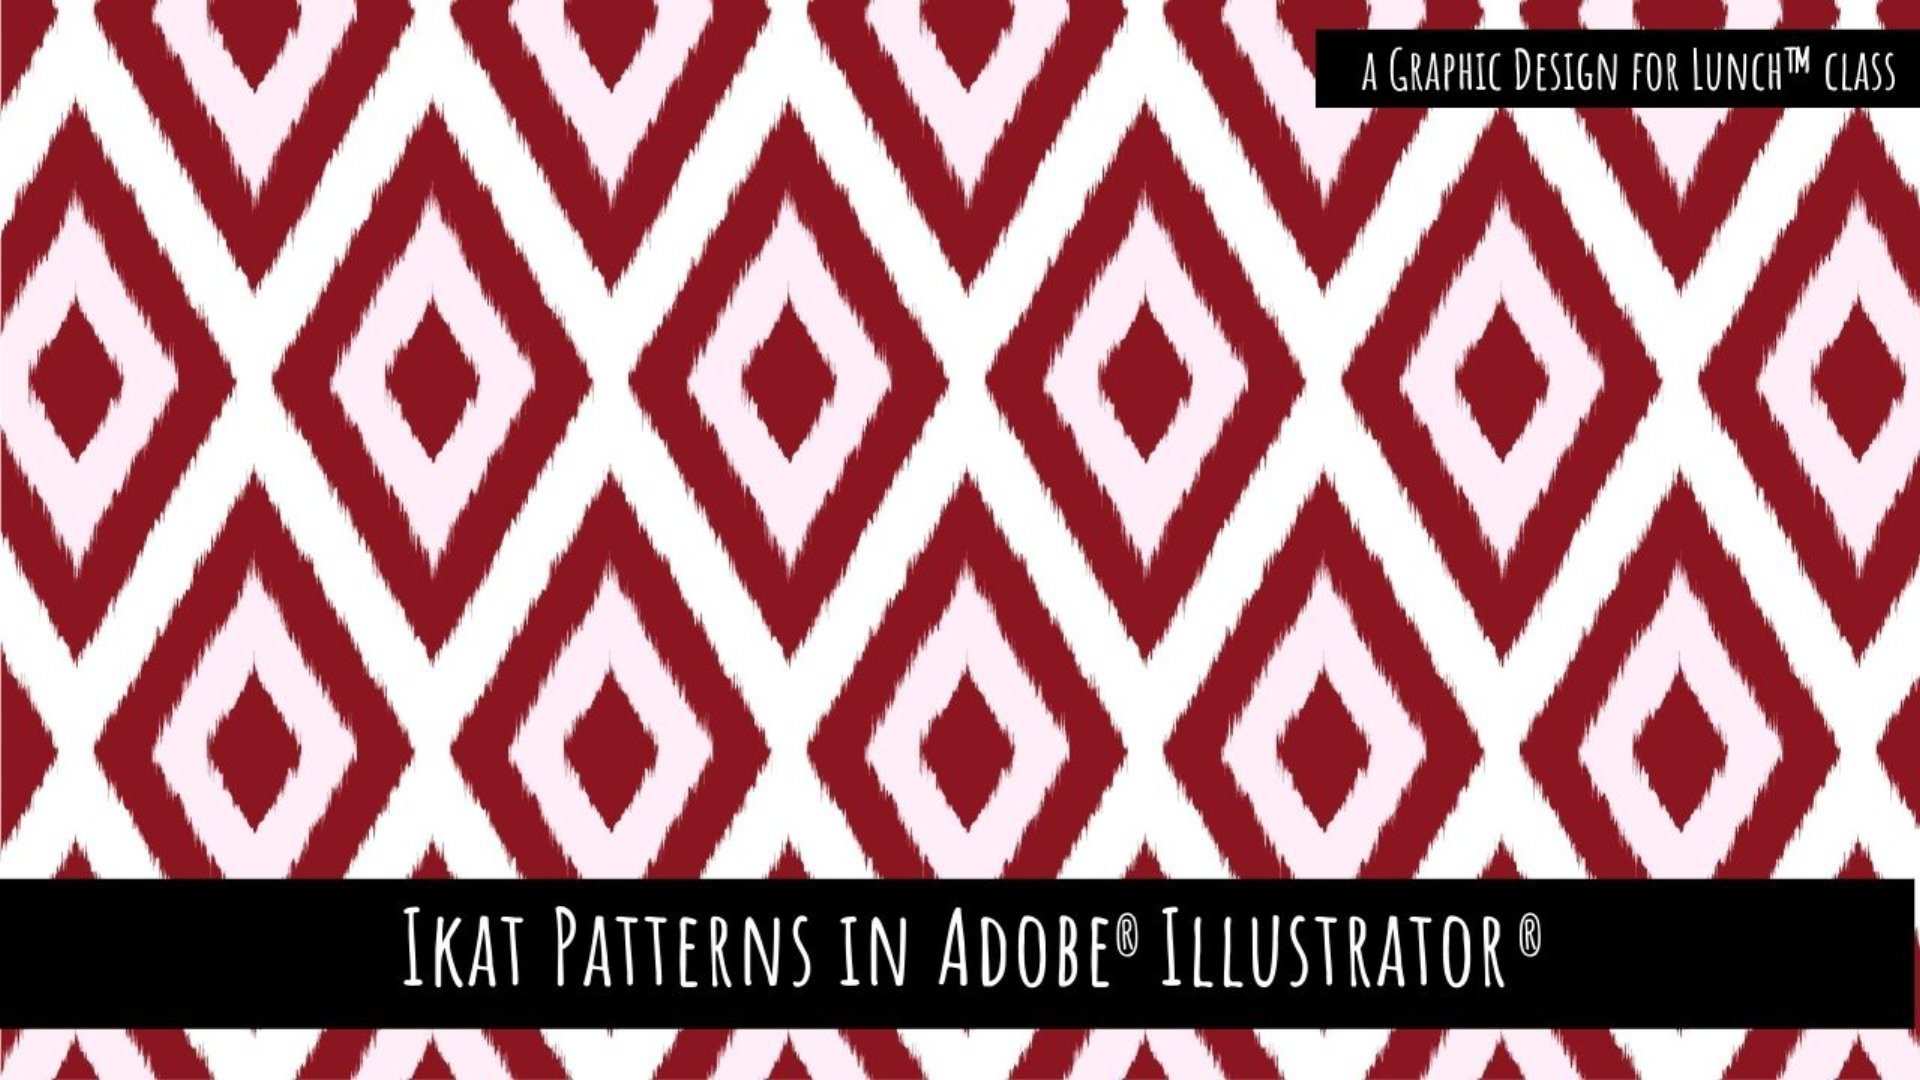 Ikat Inspired Pattern in Adobe Illustrator - A Graphic Design for Lunch™ Class